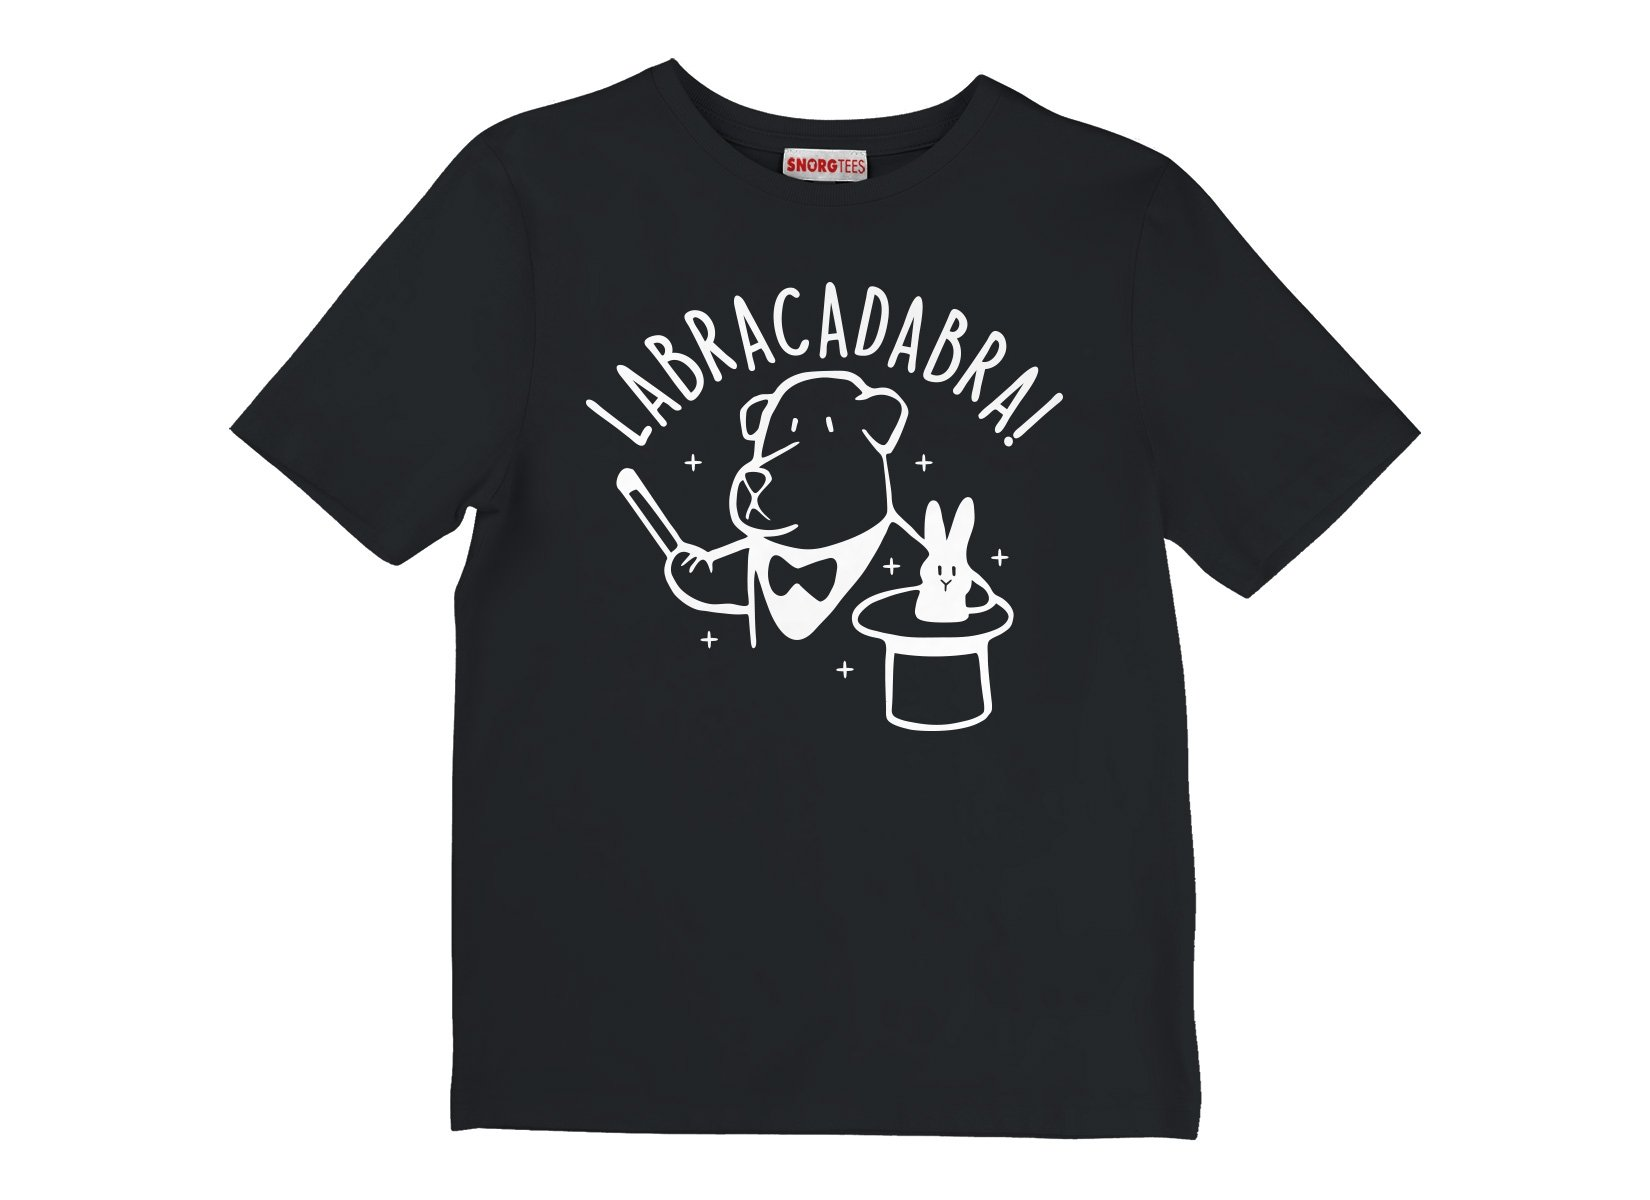 Labracadabra on Kids T-Shirt